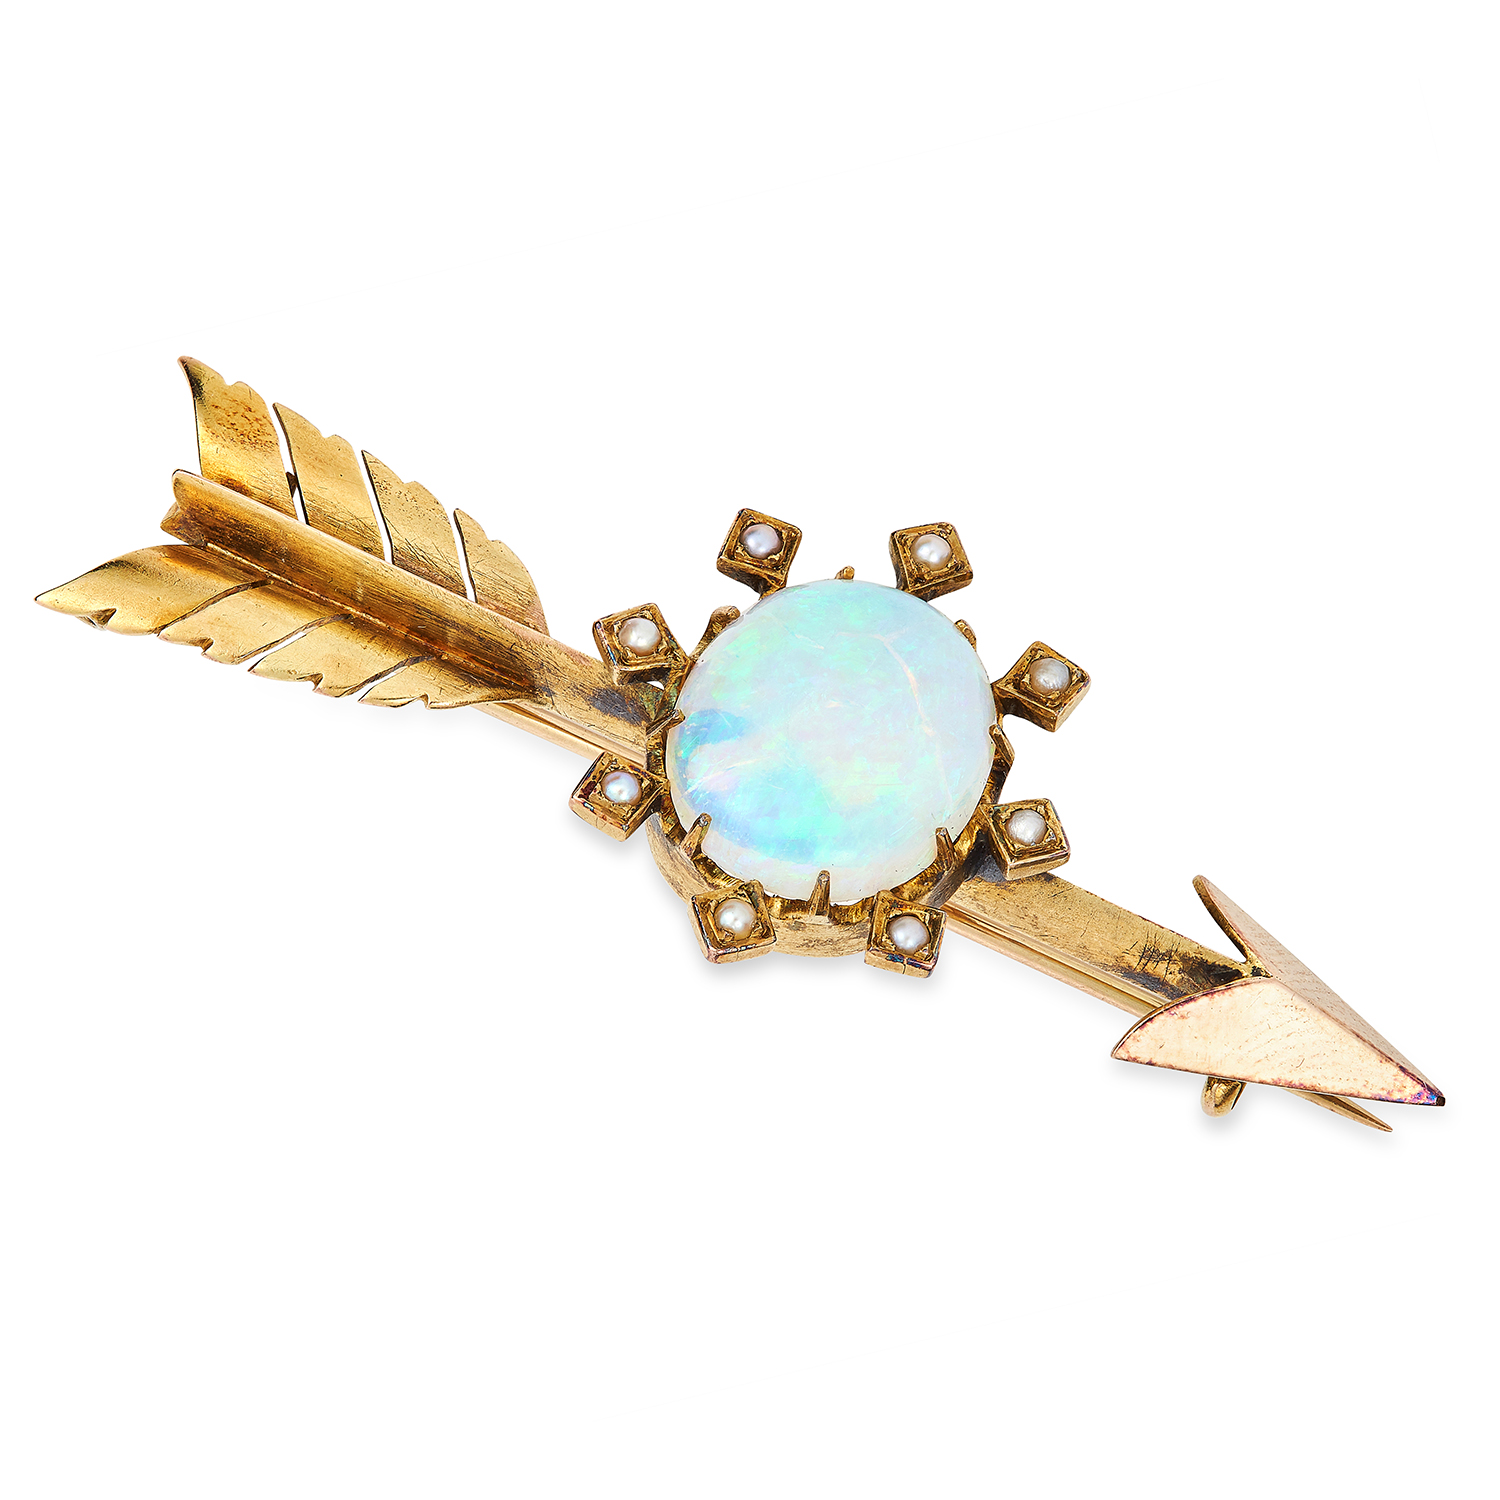 Los 17 - OPAL AND PEARL ARROW BROOCH set with a cabochon opal and seed pearls, 6.2cm, 9.7g.